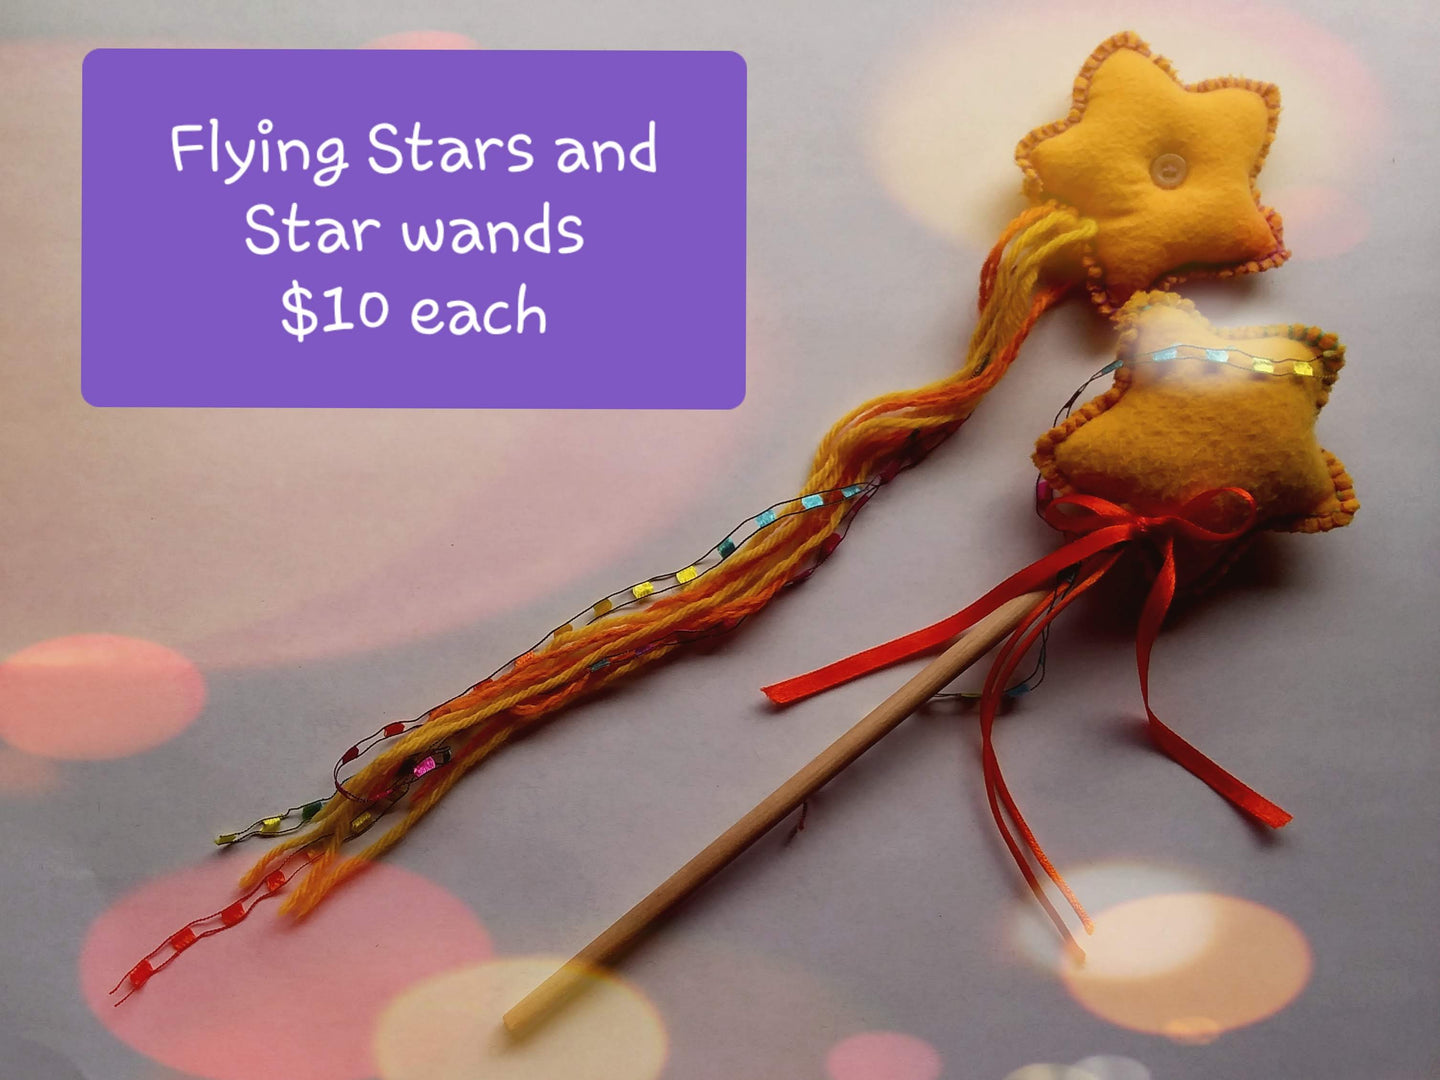 Flying stars and star wand